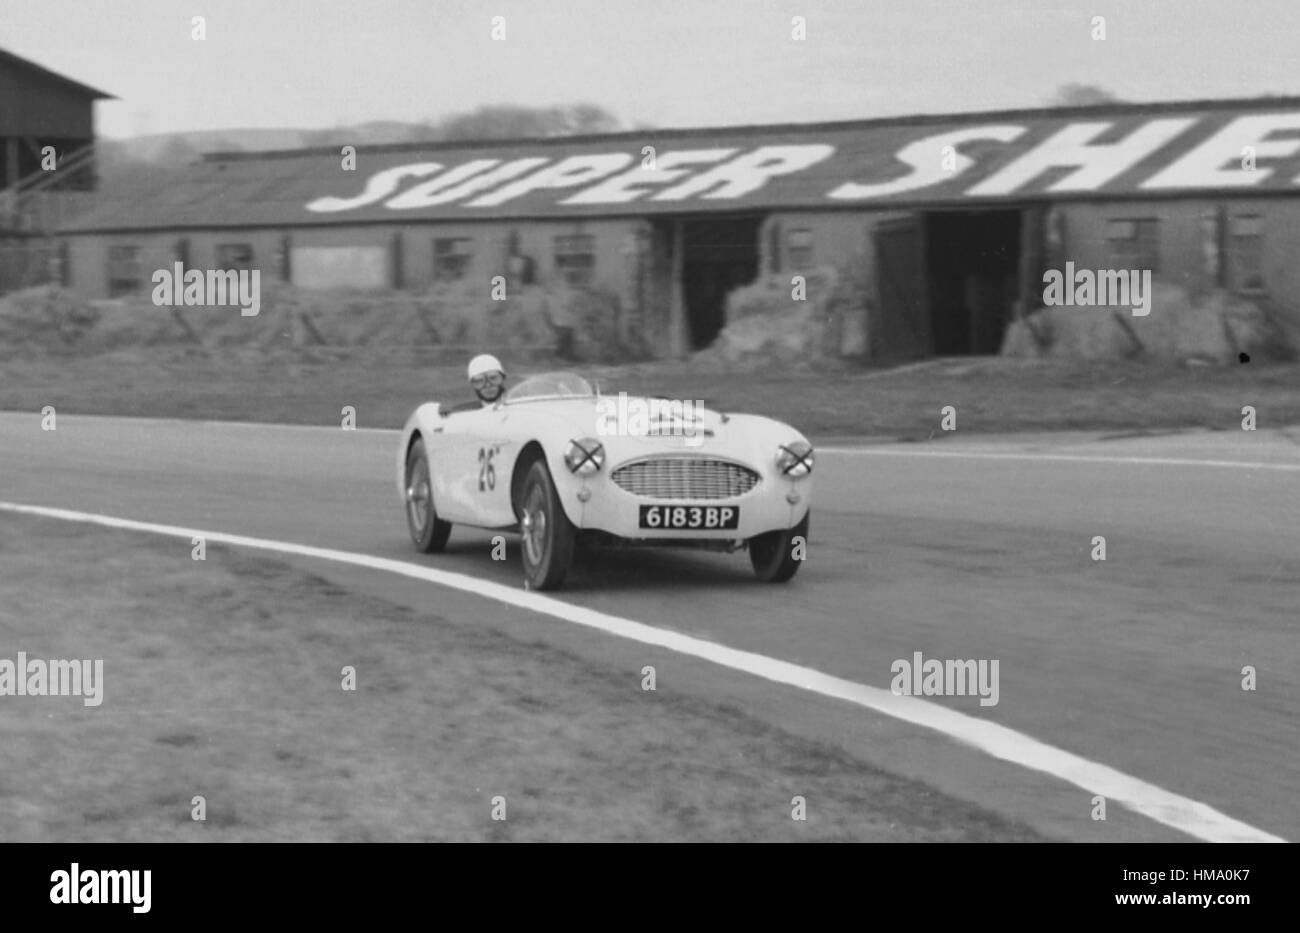 Goodwood 14th March 1959 Austin - Healey 100-6 - Stock Image